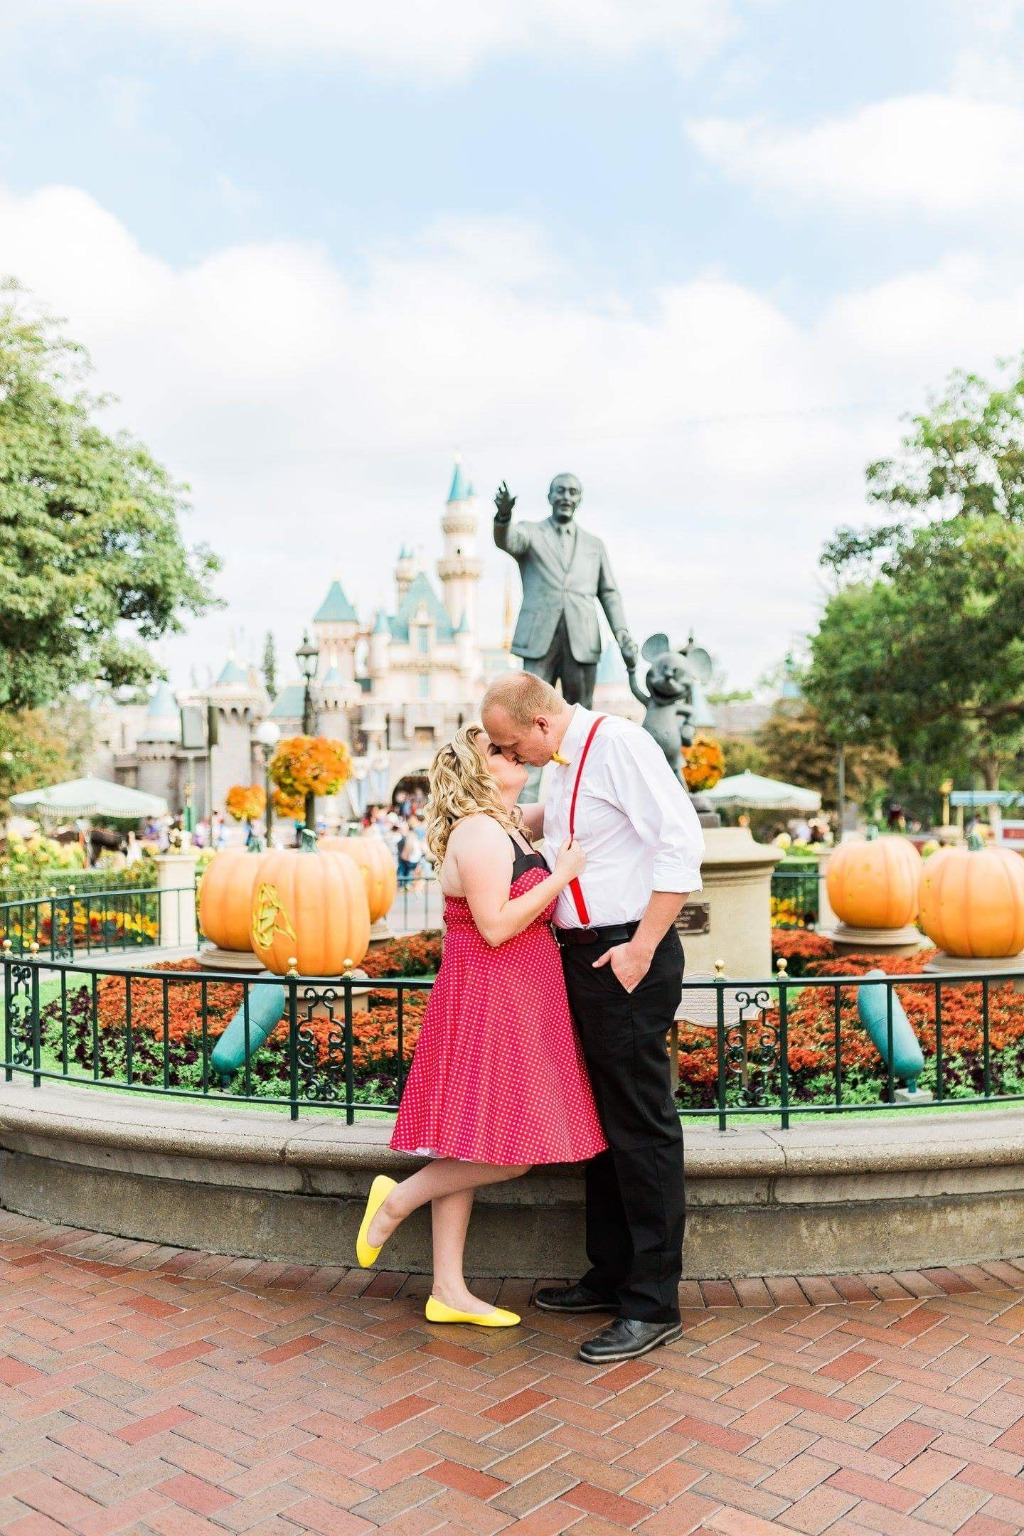 Disneyland is always a great idea for an engagement session!